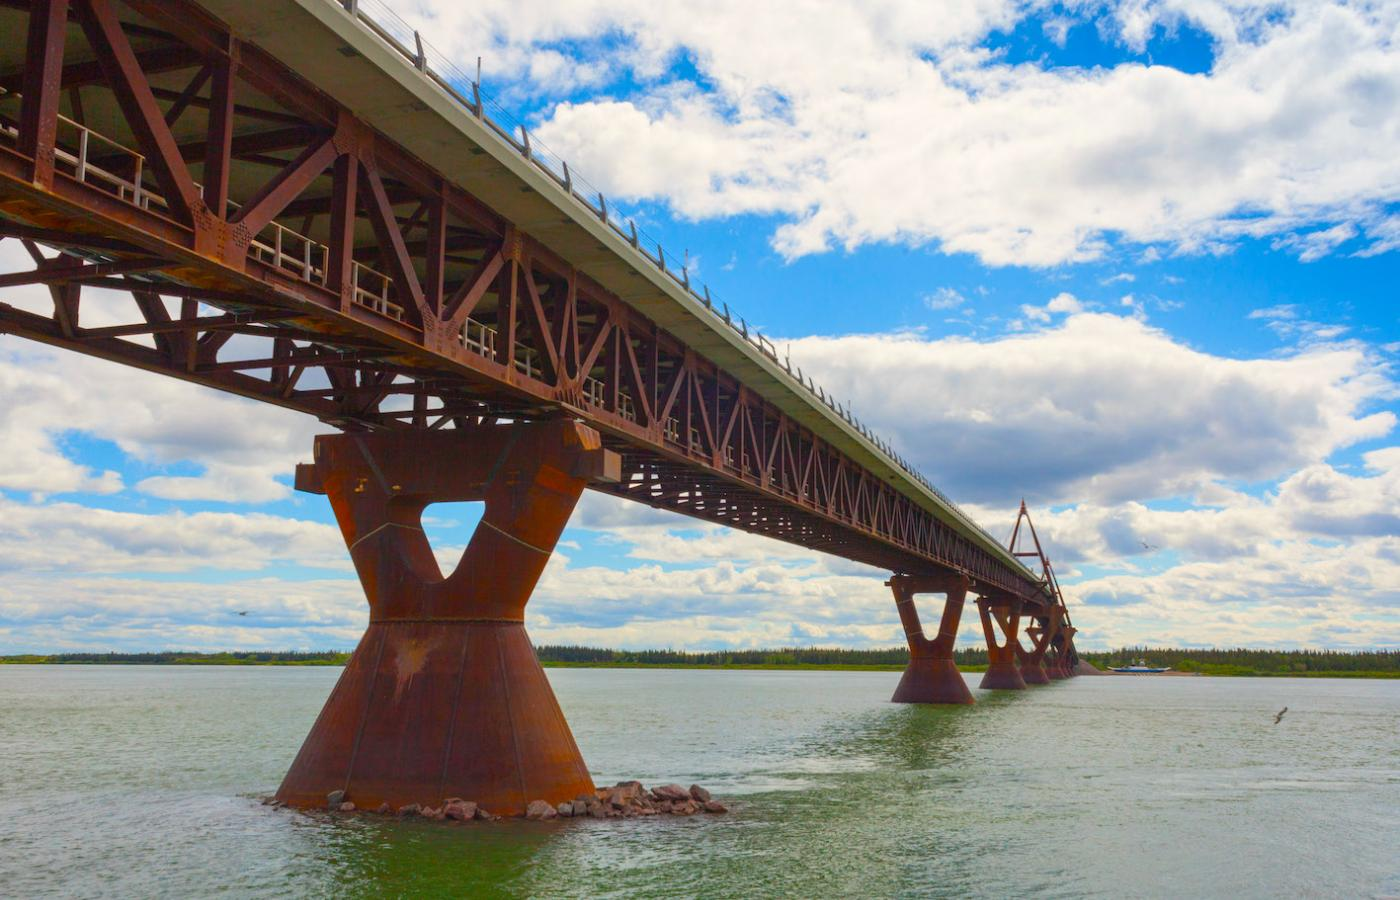 The Deh Cho Bridge which links the Northwest Territories to southern Canada